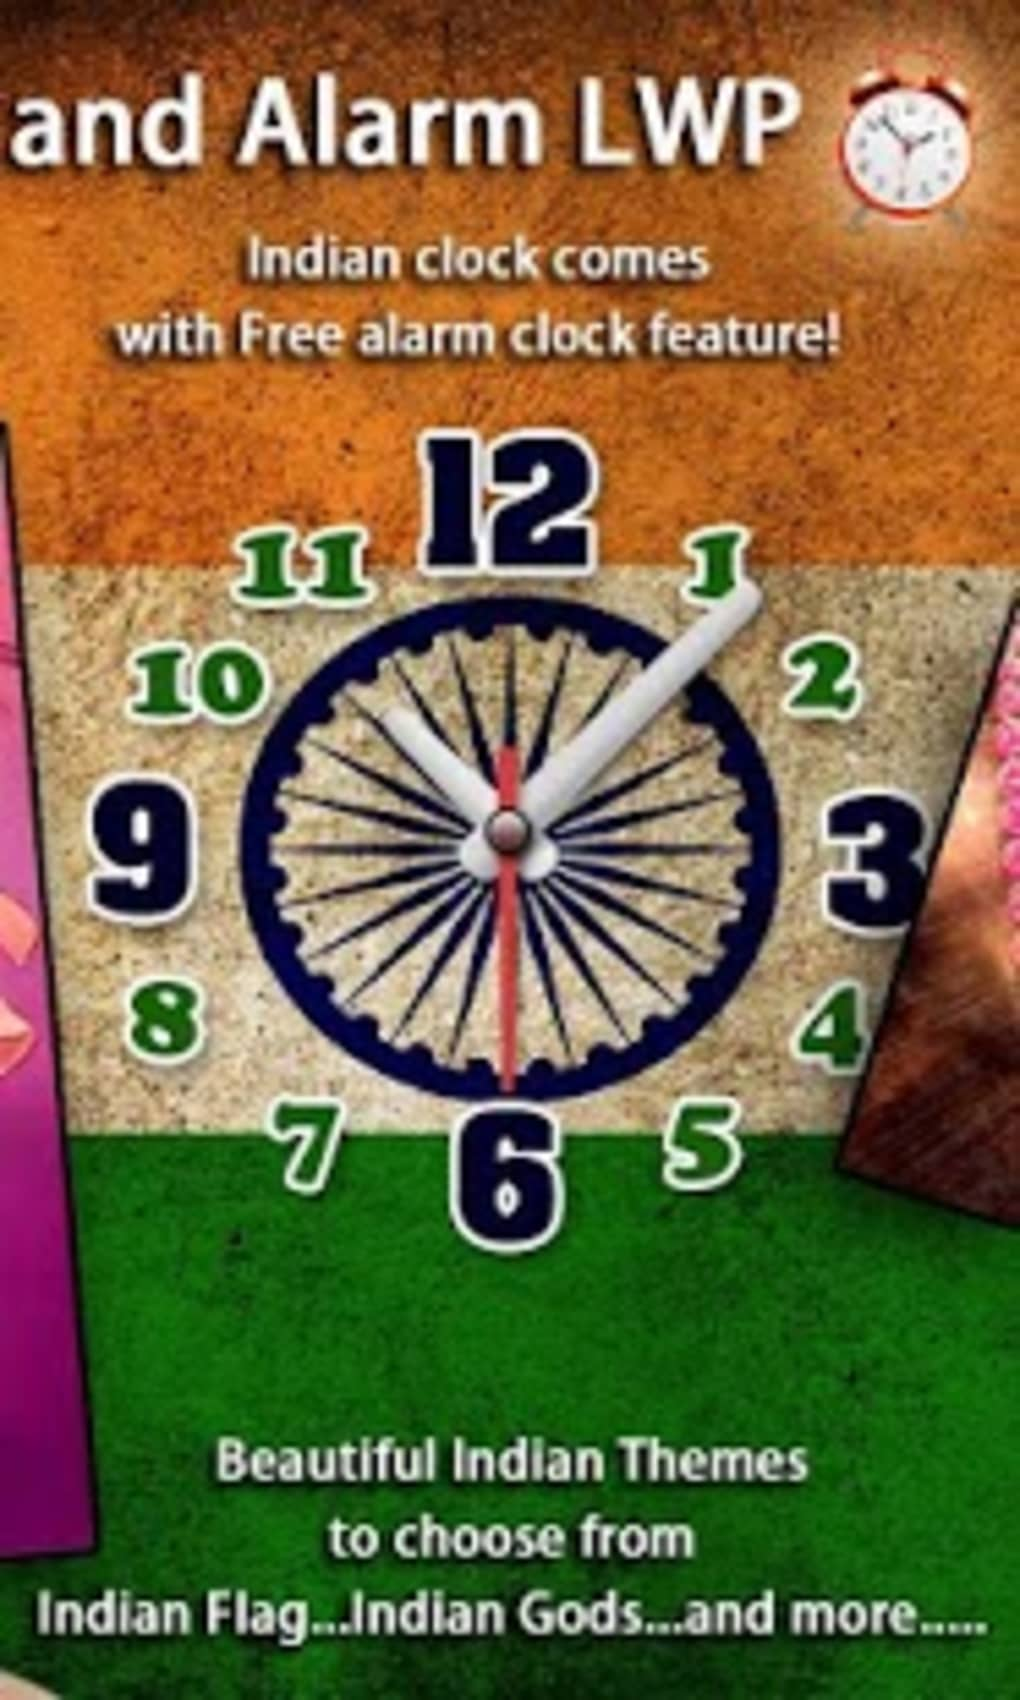 I Love India Clock & Alarm LWP for Android - Download